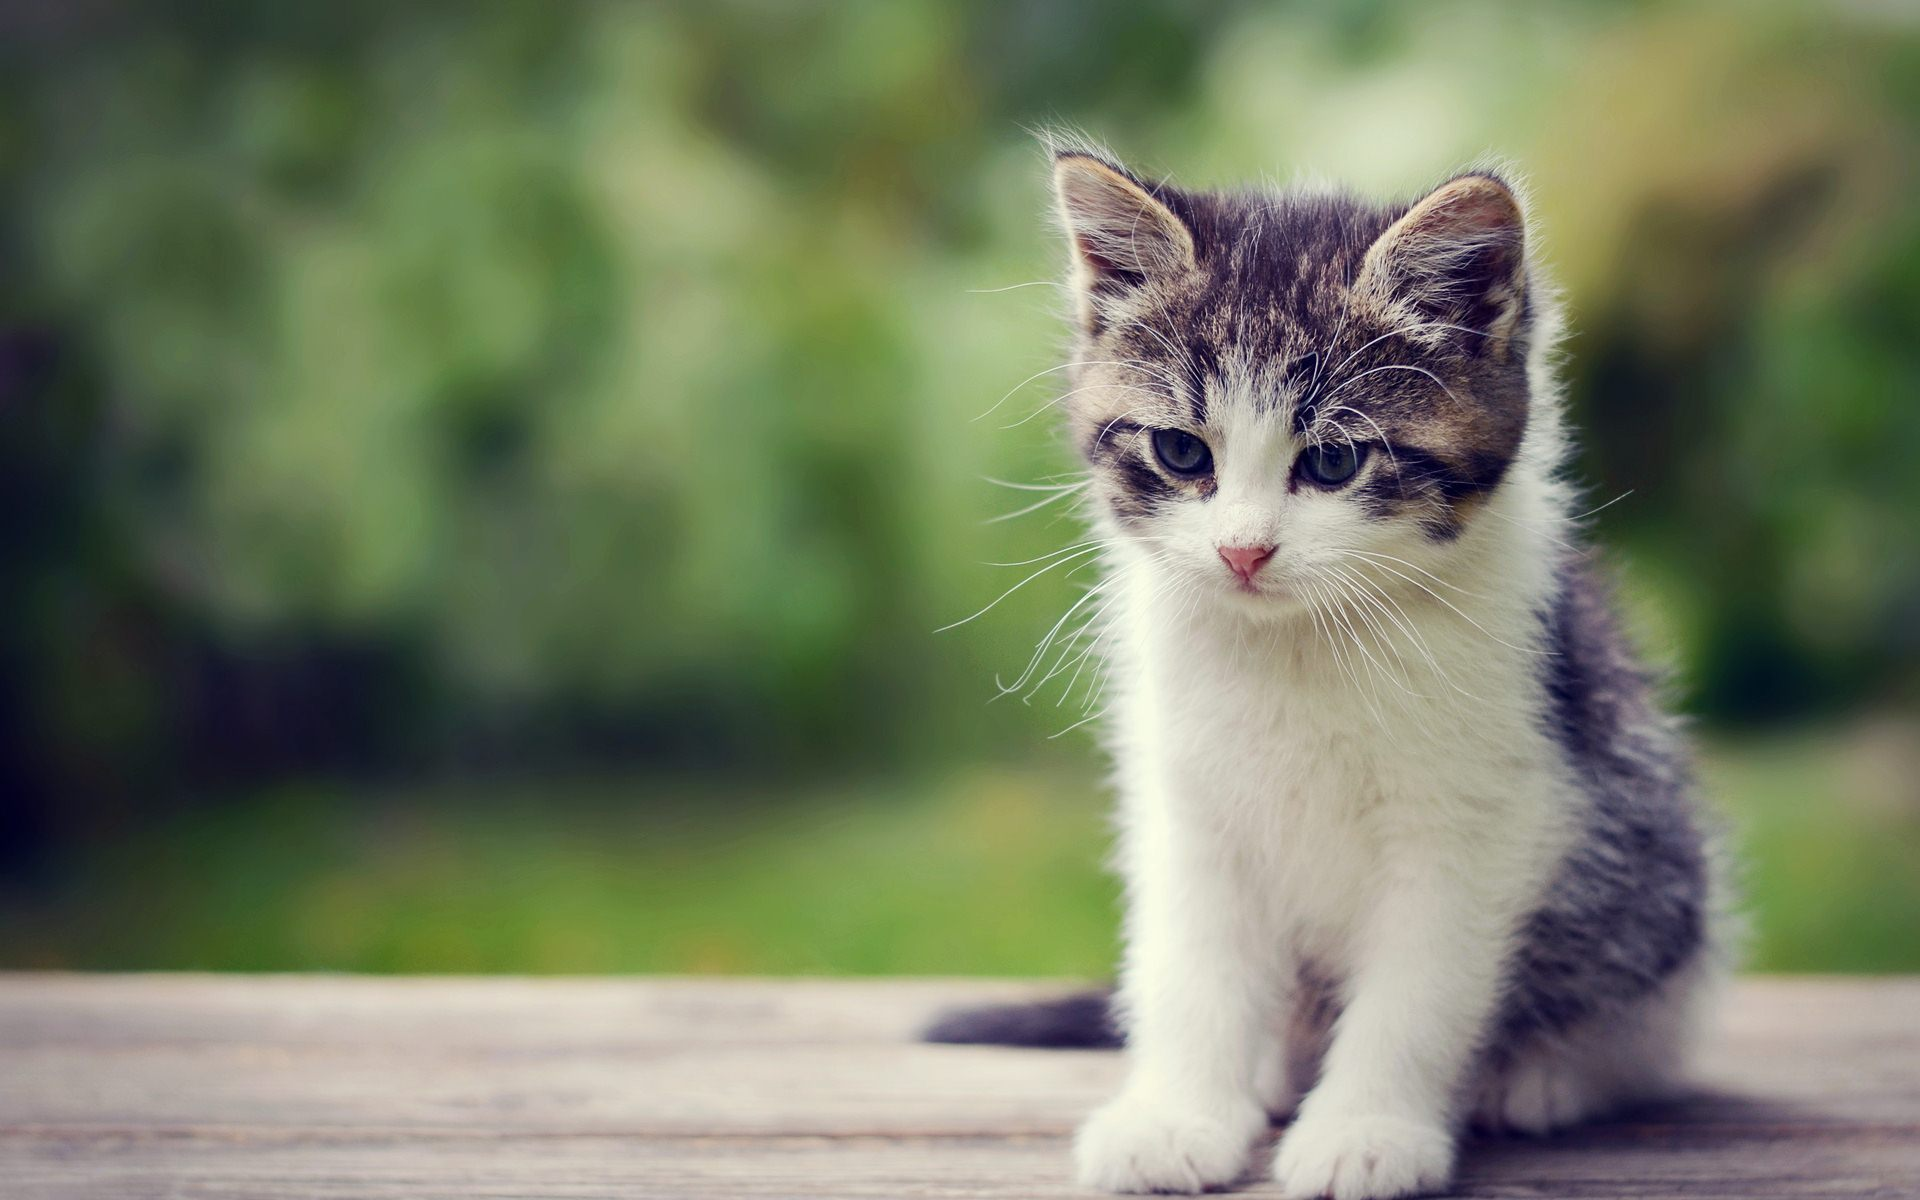 Kitten HD Wallpaper For Desktop 1920x1200